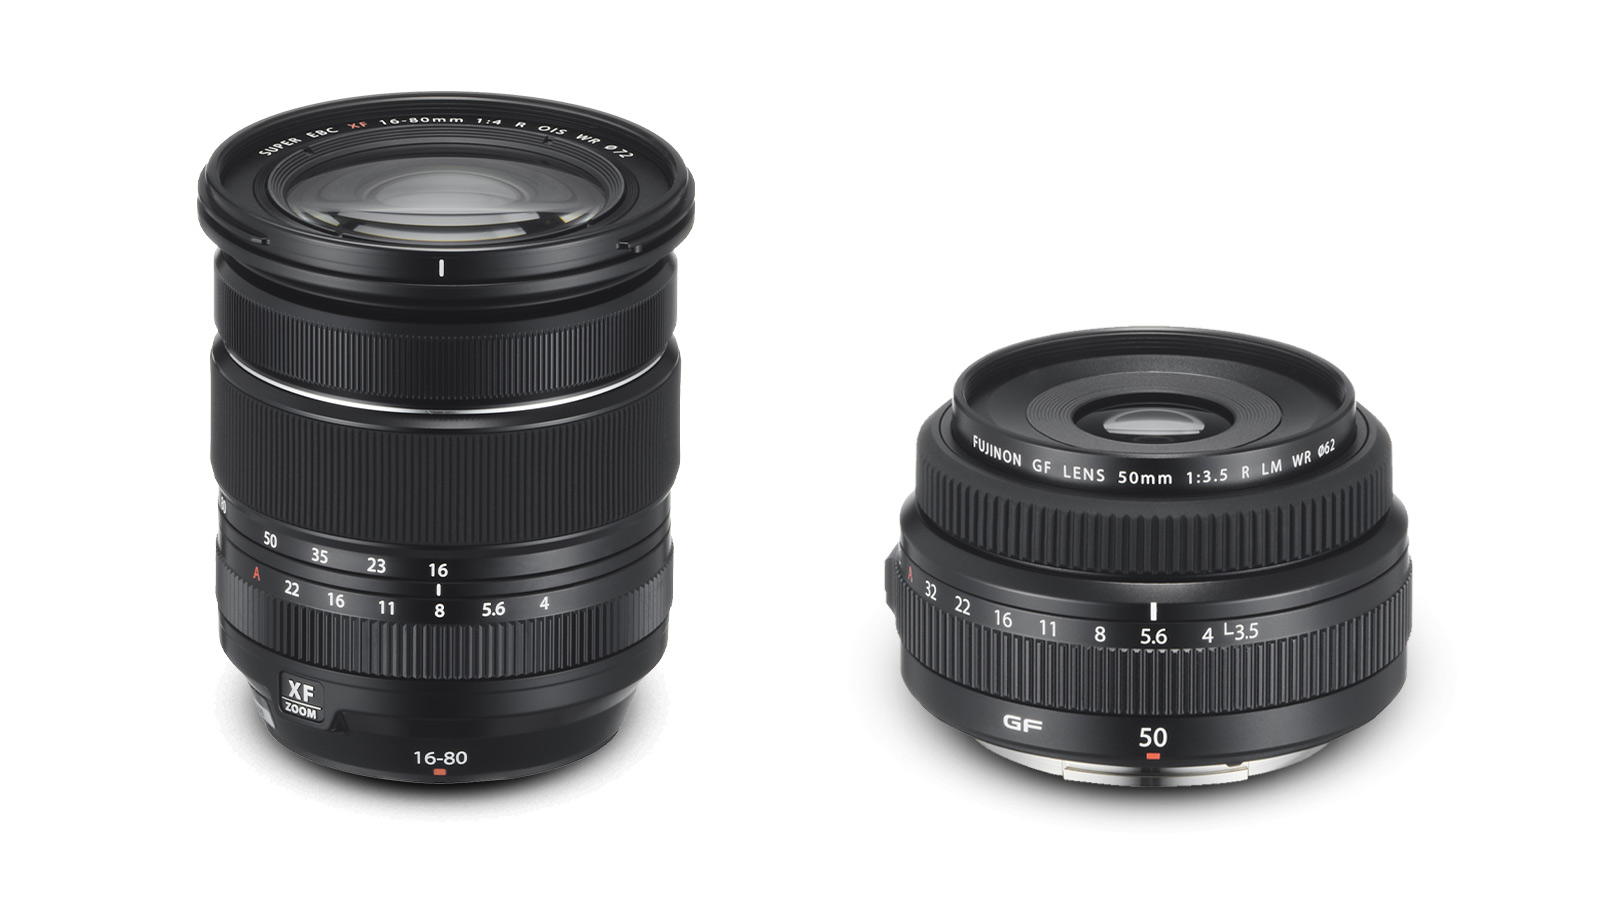 Fujifilm Announces New XF 16-80mm F4 and GF 50mm F3.5 Lenses